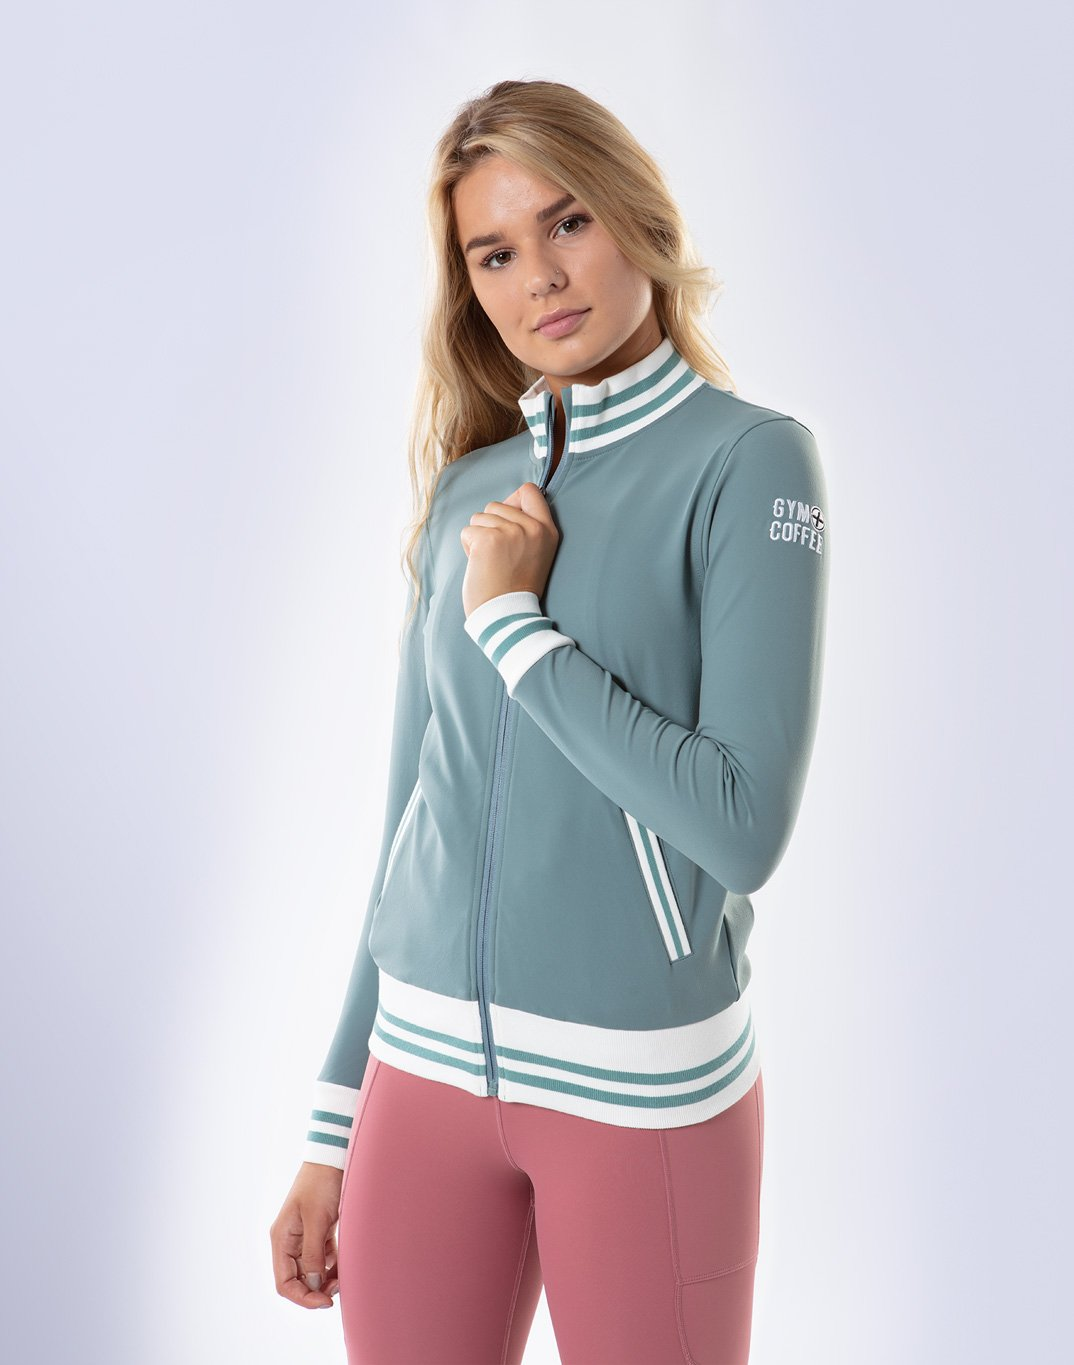 Gym Plus Coffee Jacket Women's Retro FastTrack Jacket in Green Designed in Ireland